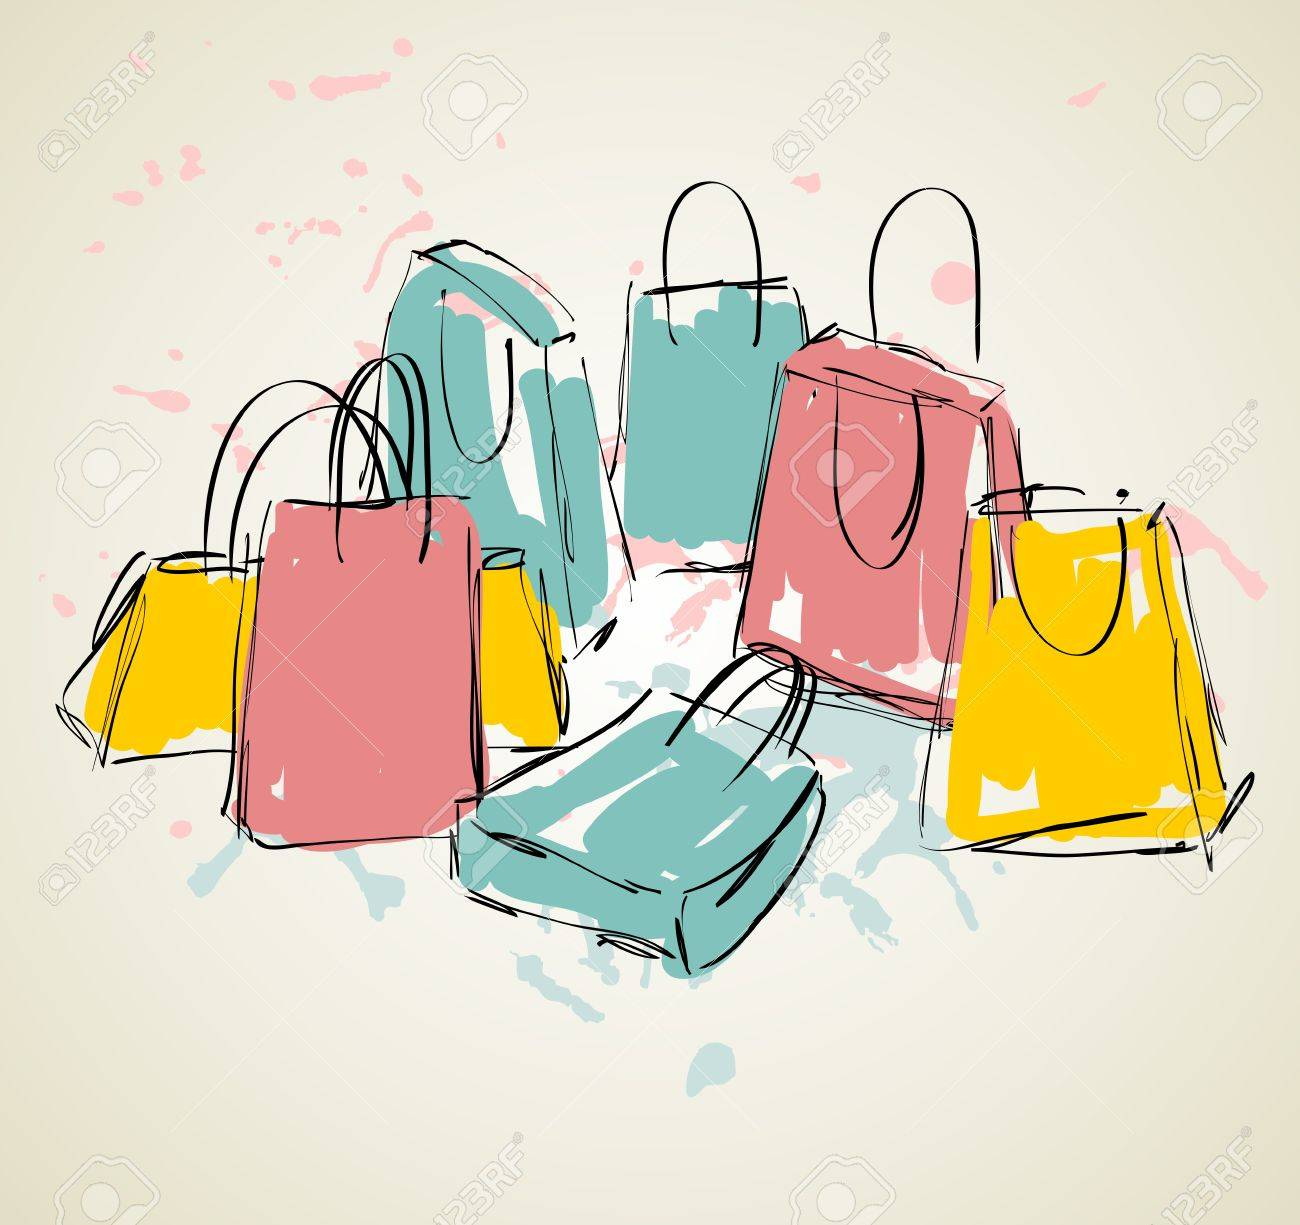 vector sketch illustration with colored shopping bags. - 64501281